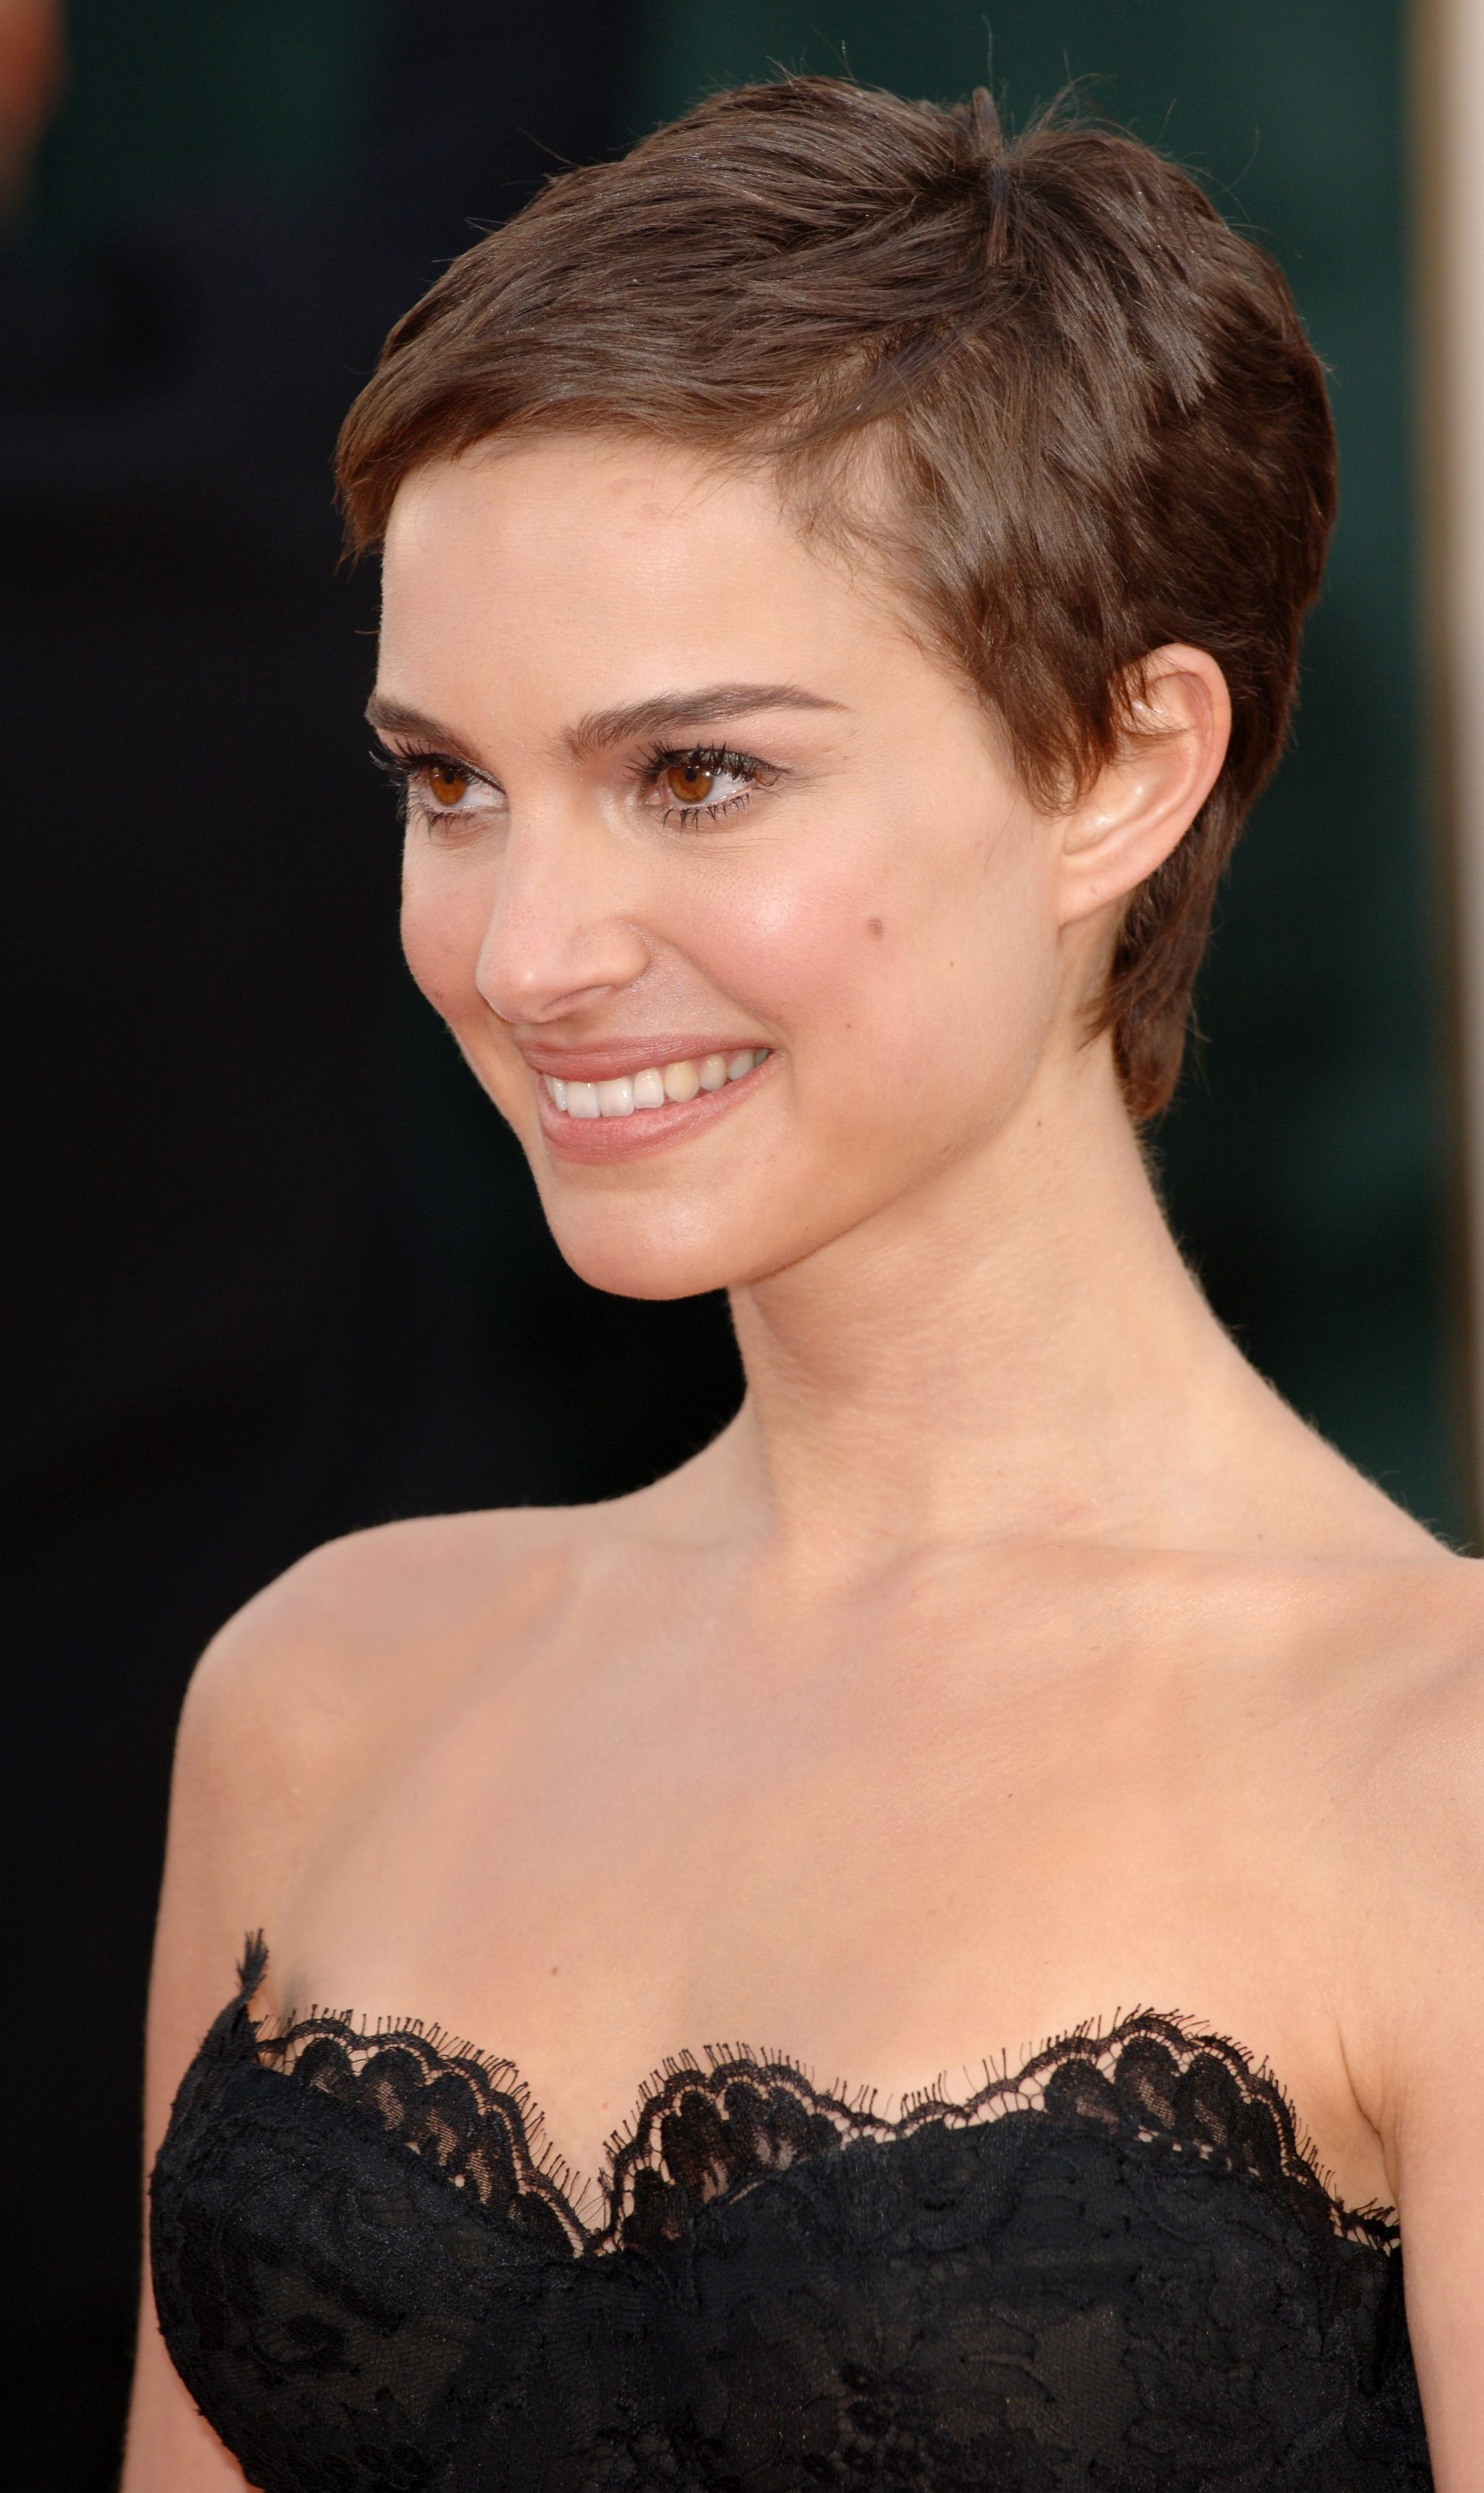 10 Latest Short Hairstyles for Women for 10